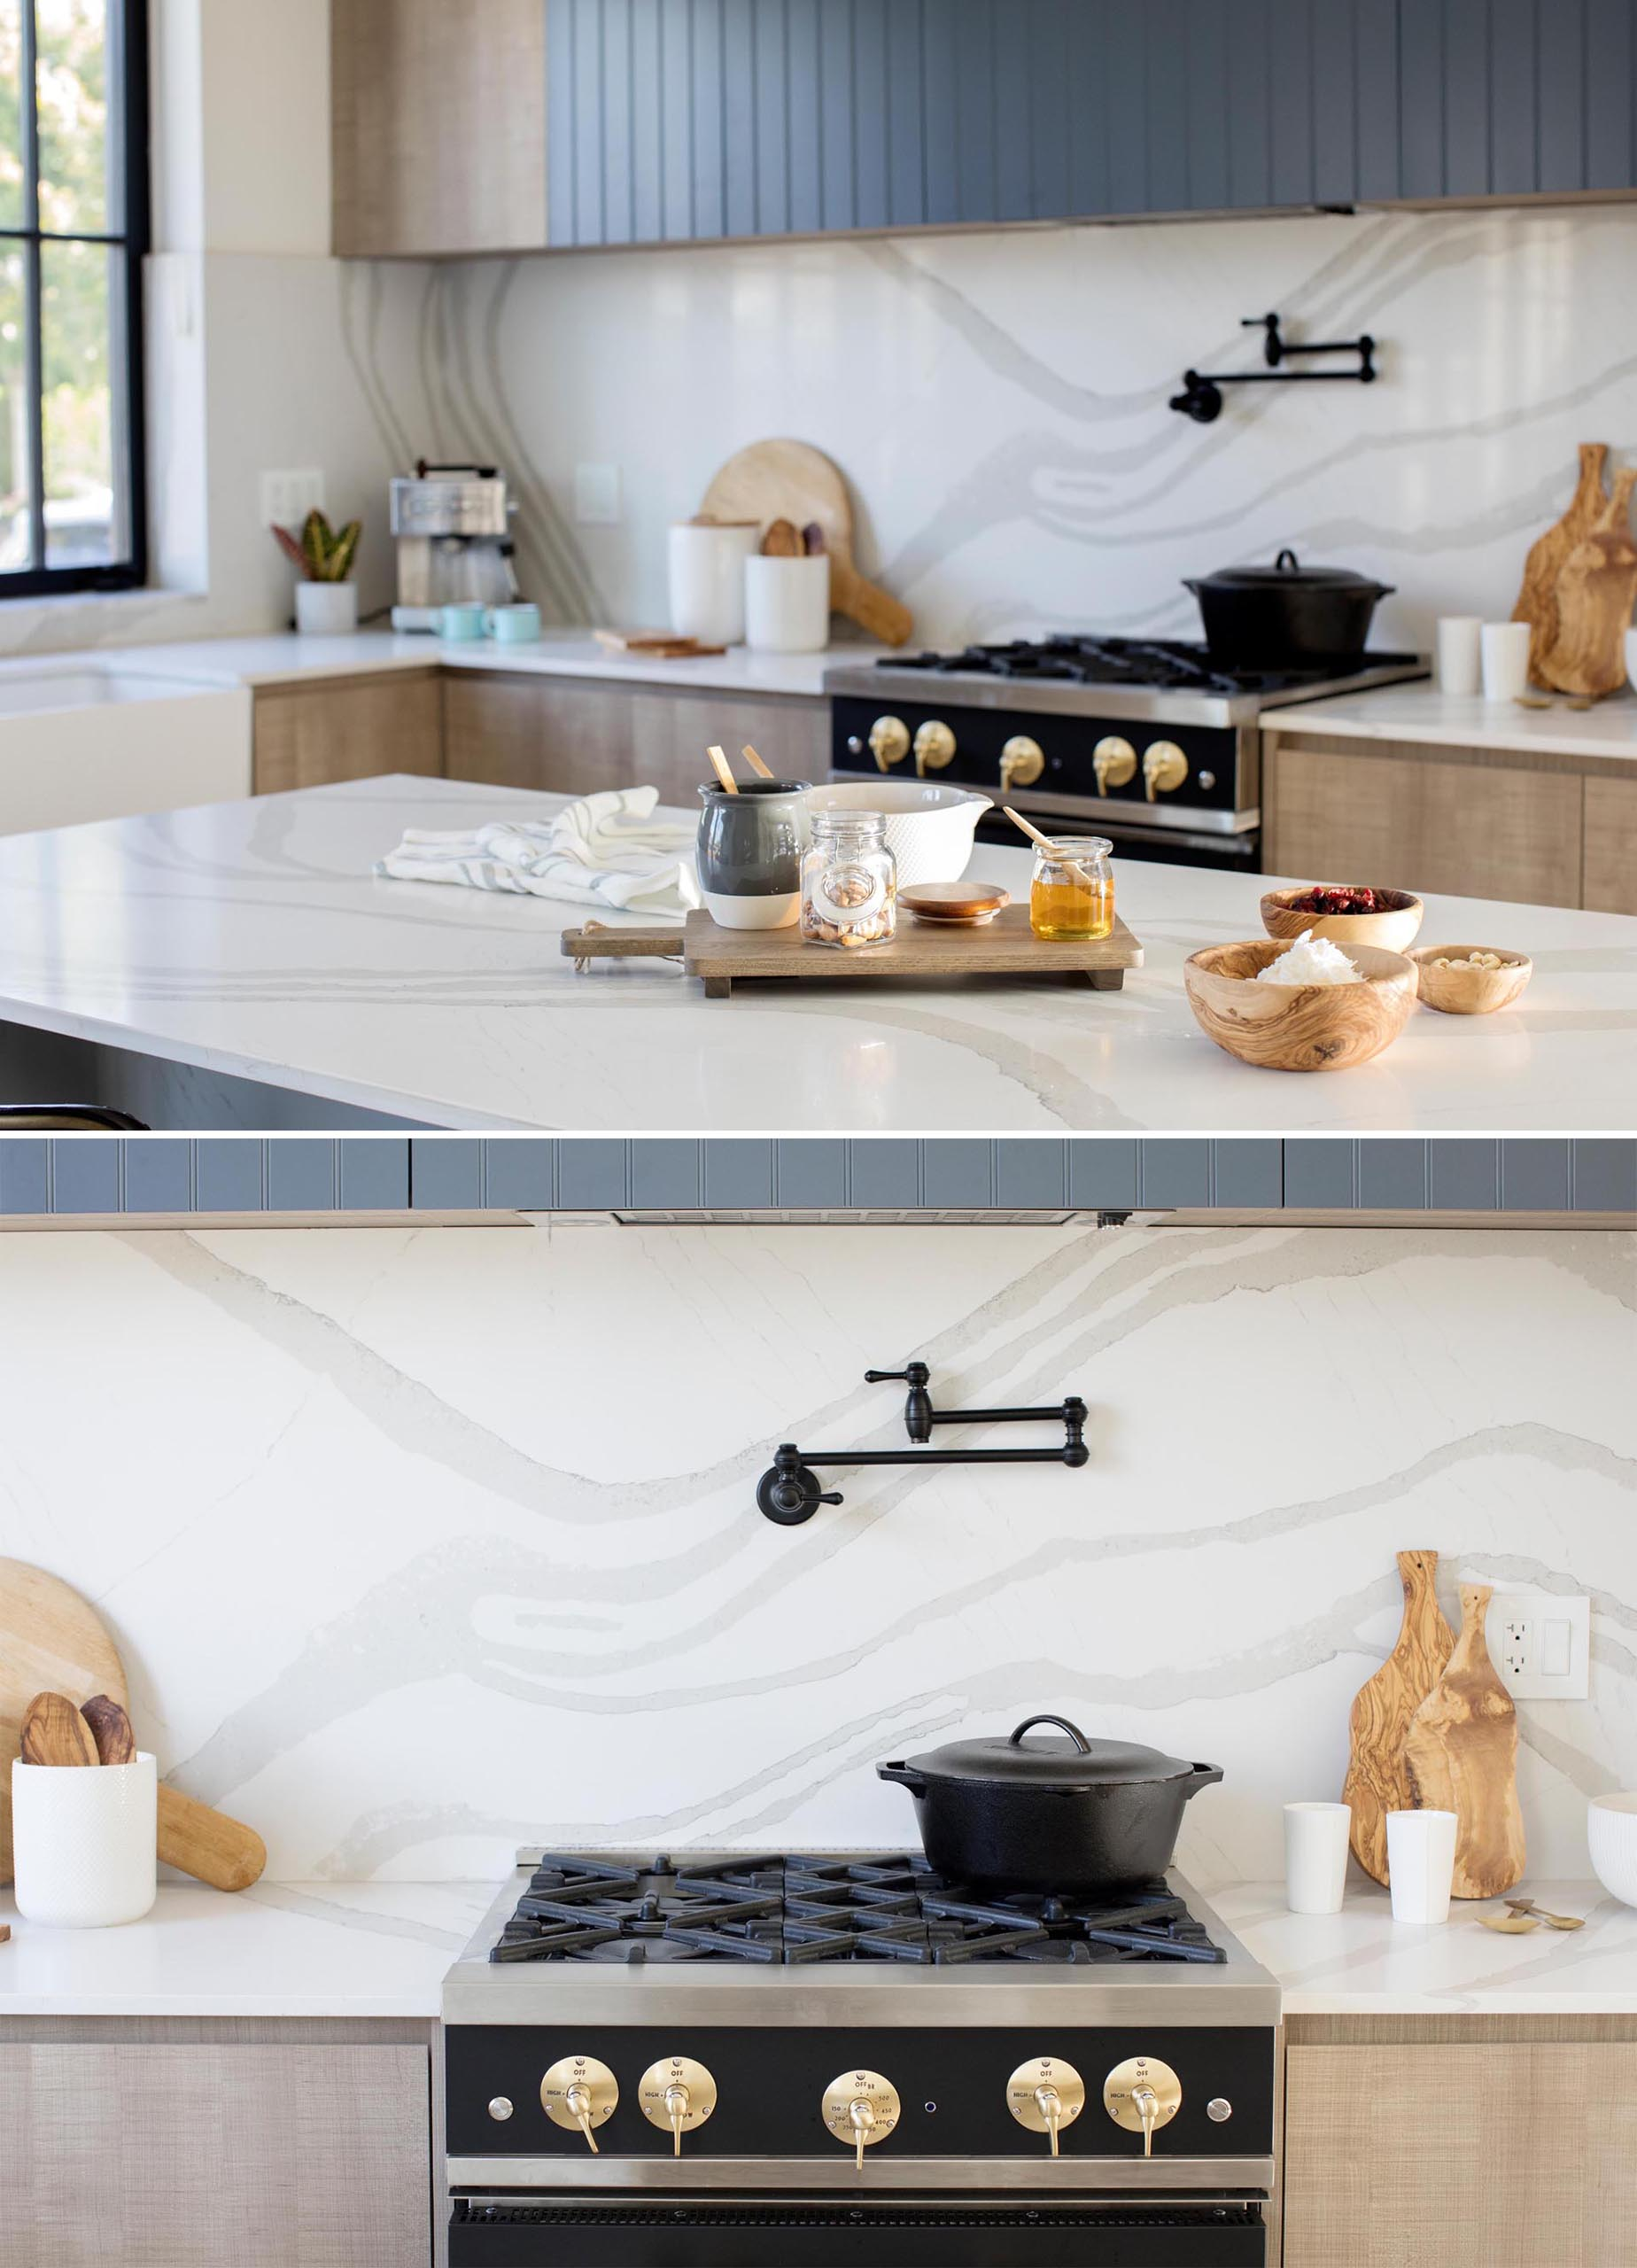 A modern kitchen with marbled backsplash and matching countertops.